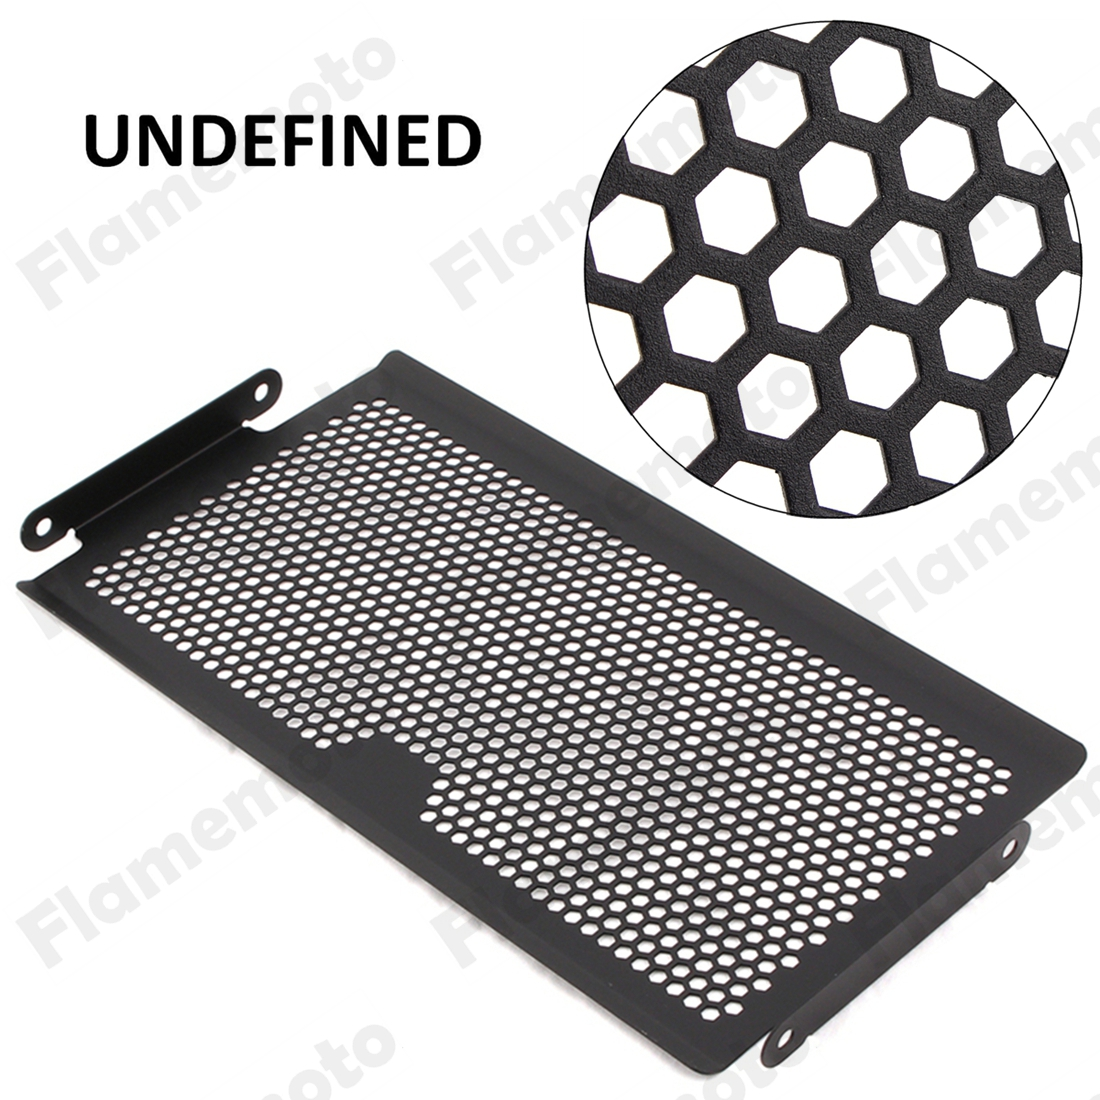 Motorcycle Accessories Black Radiator Grille Guard Cover Protector For Yamaha MT-07 FZ-07 2013 2014 2015 2016 UNDEFINED motorcycle radiator protective cover grill guard grille protector for kawasaki z1000sx ninja 1000 2011 2012 2013 2014 2015 2016